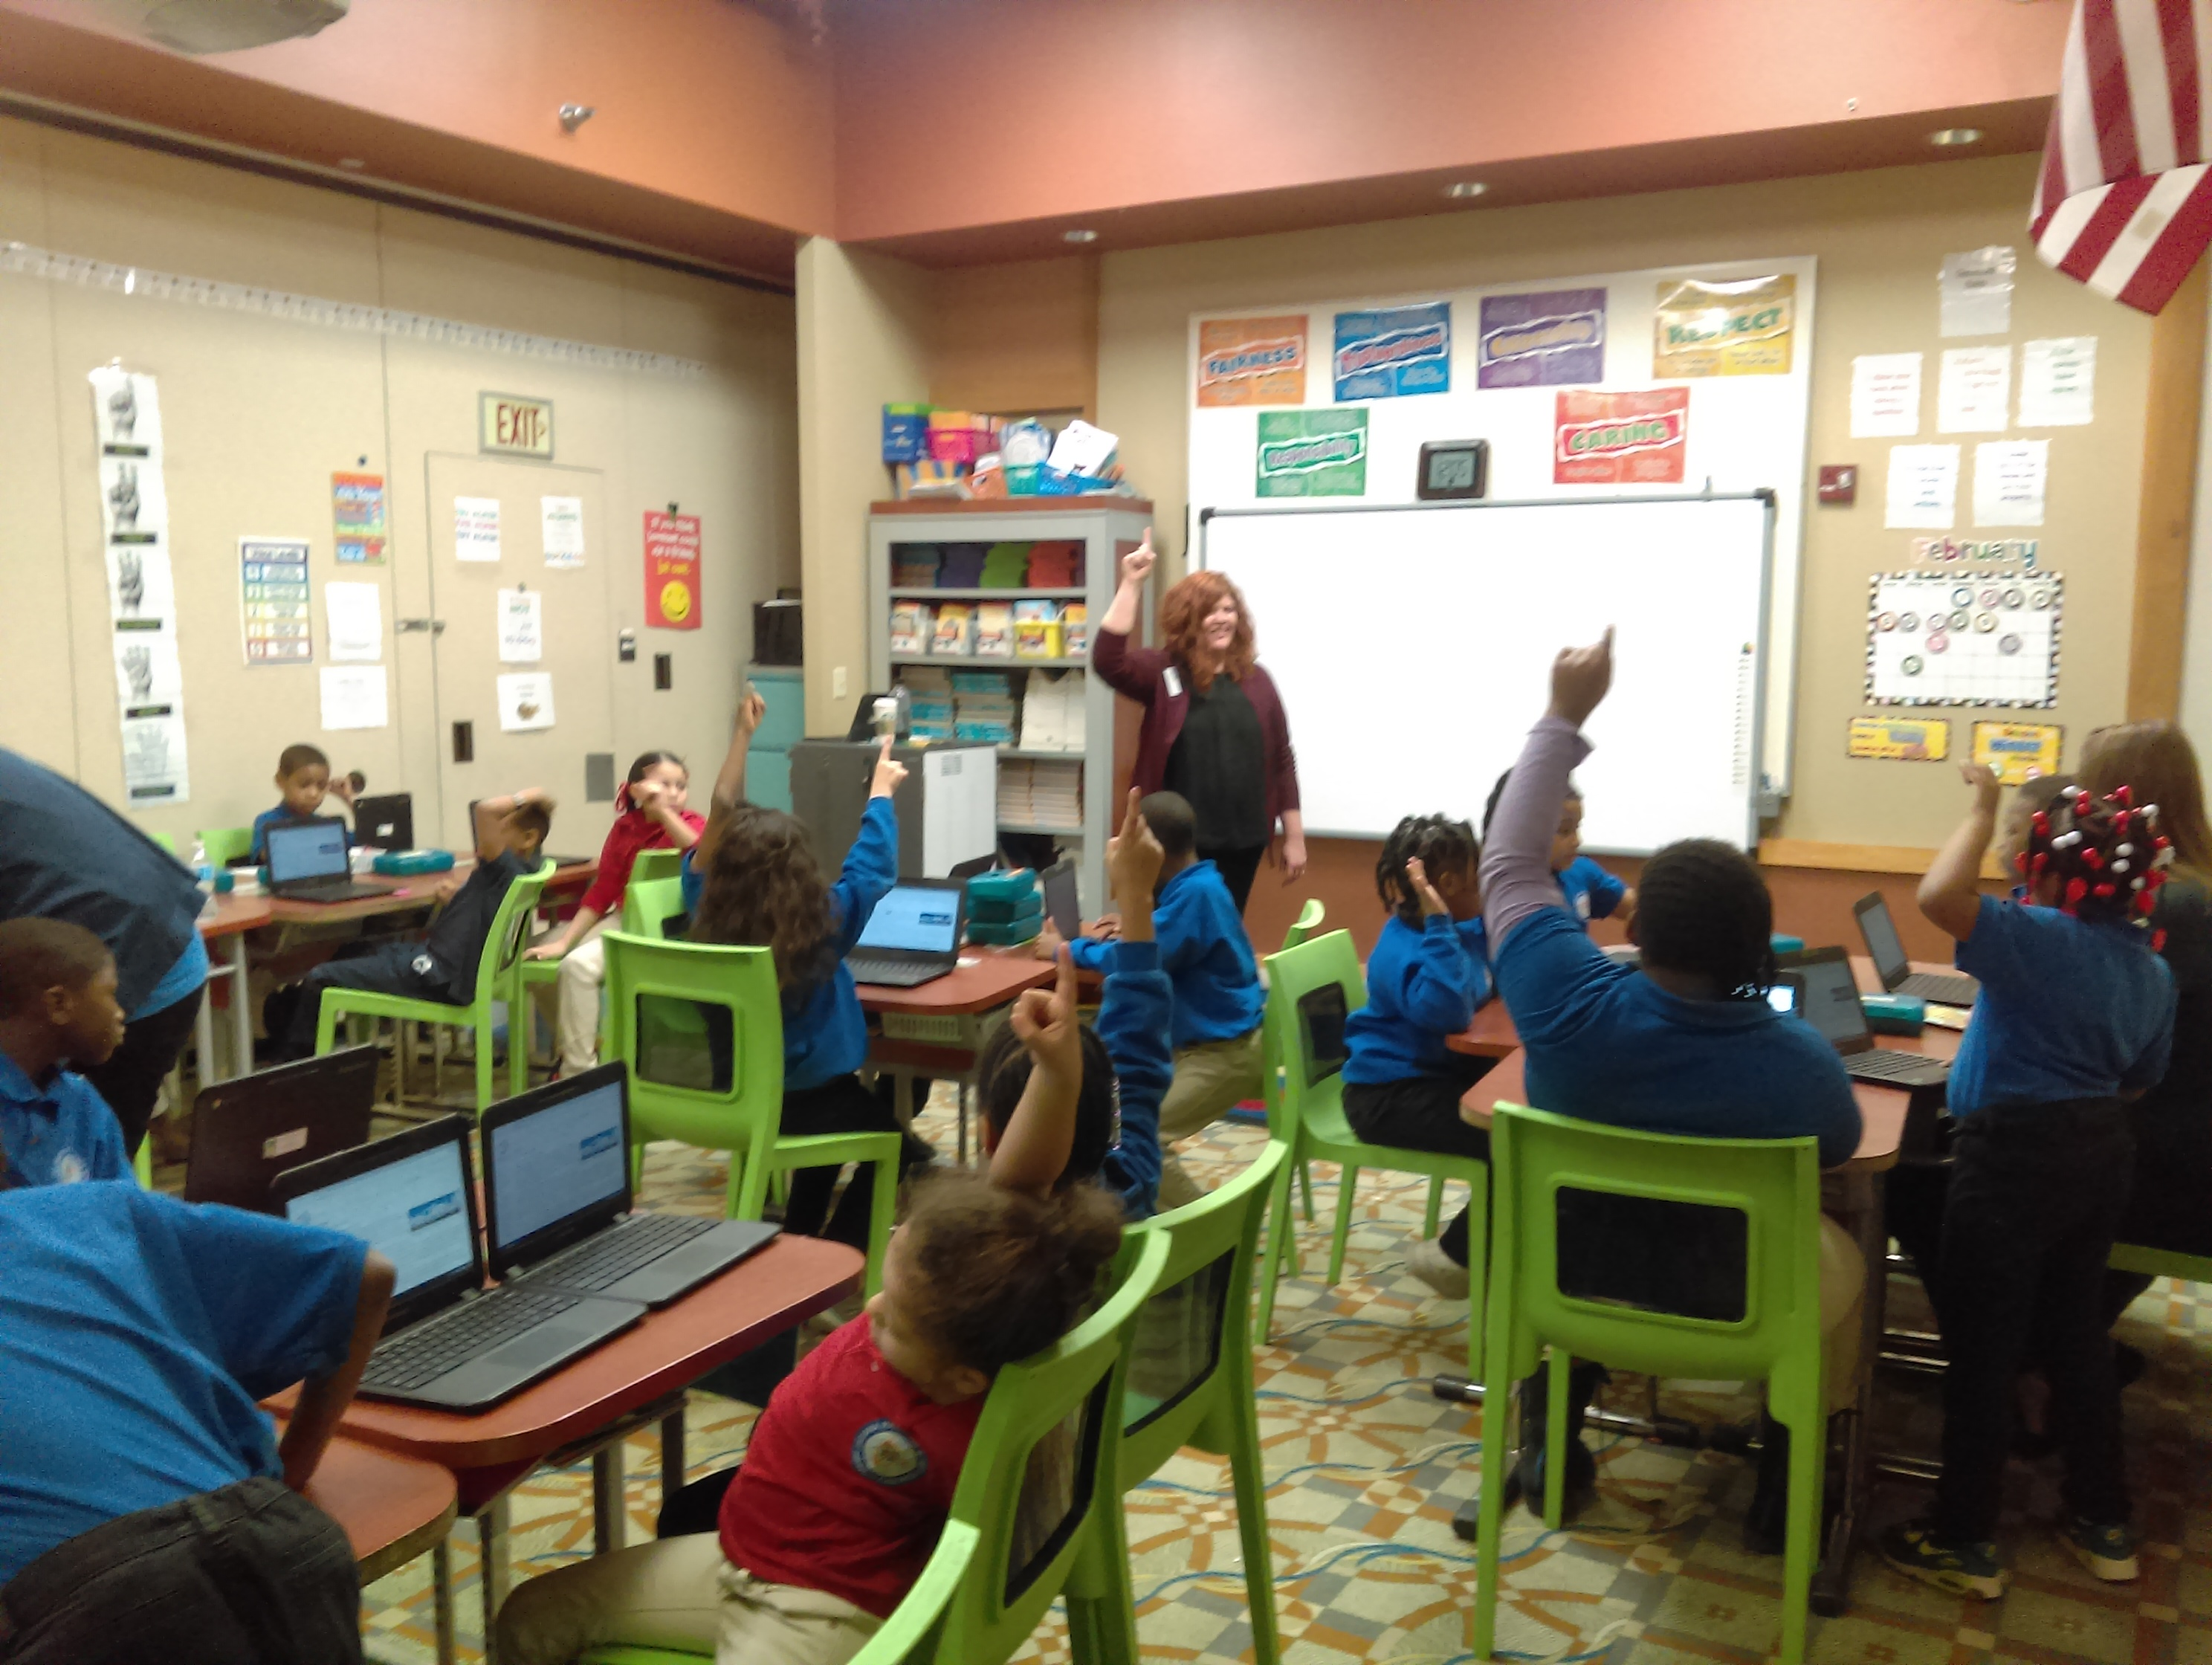 Rachel Herron leading a group of elementary students in a classroom